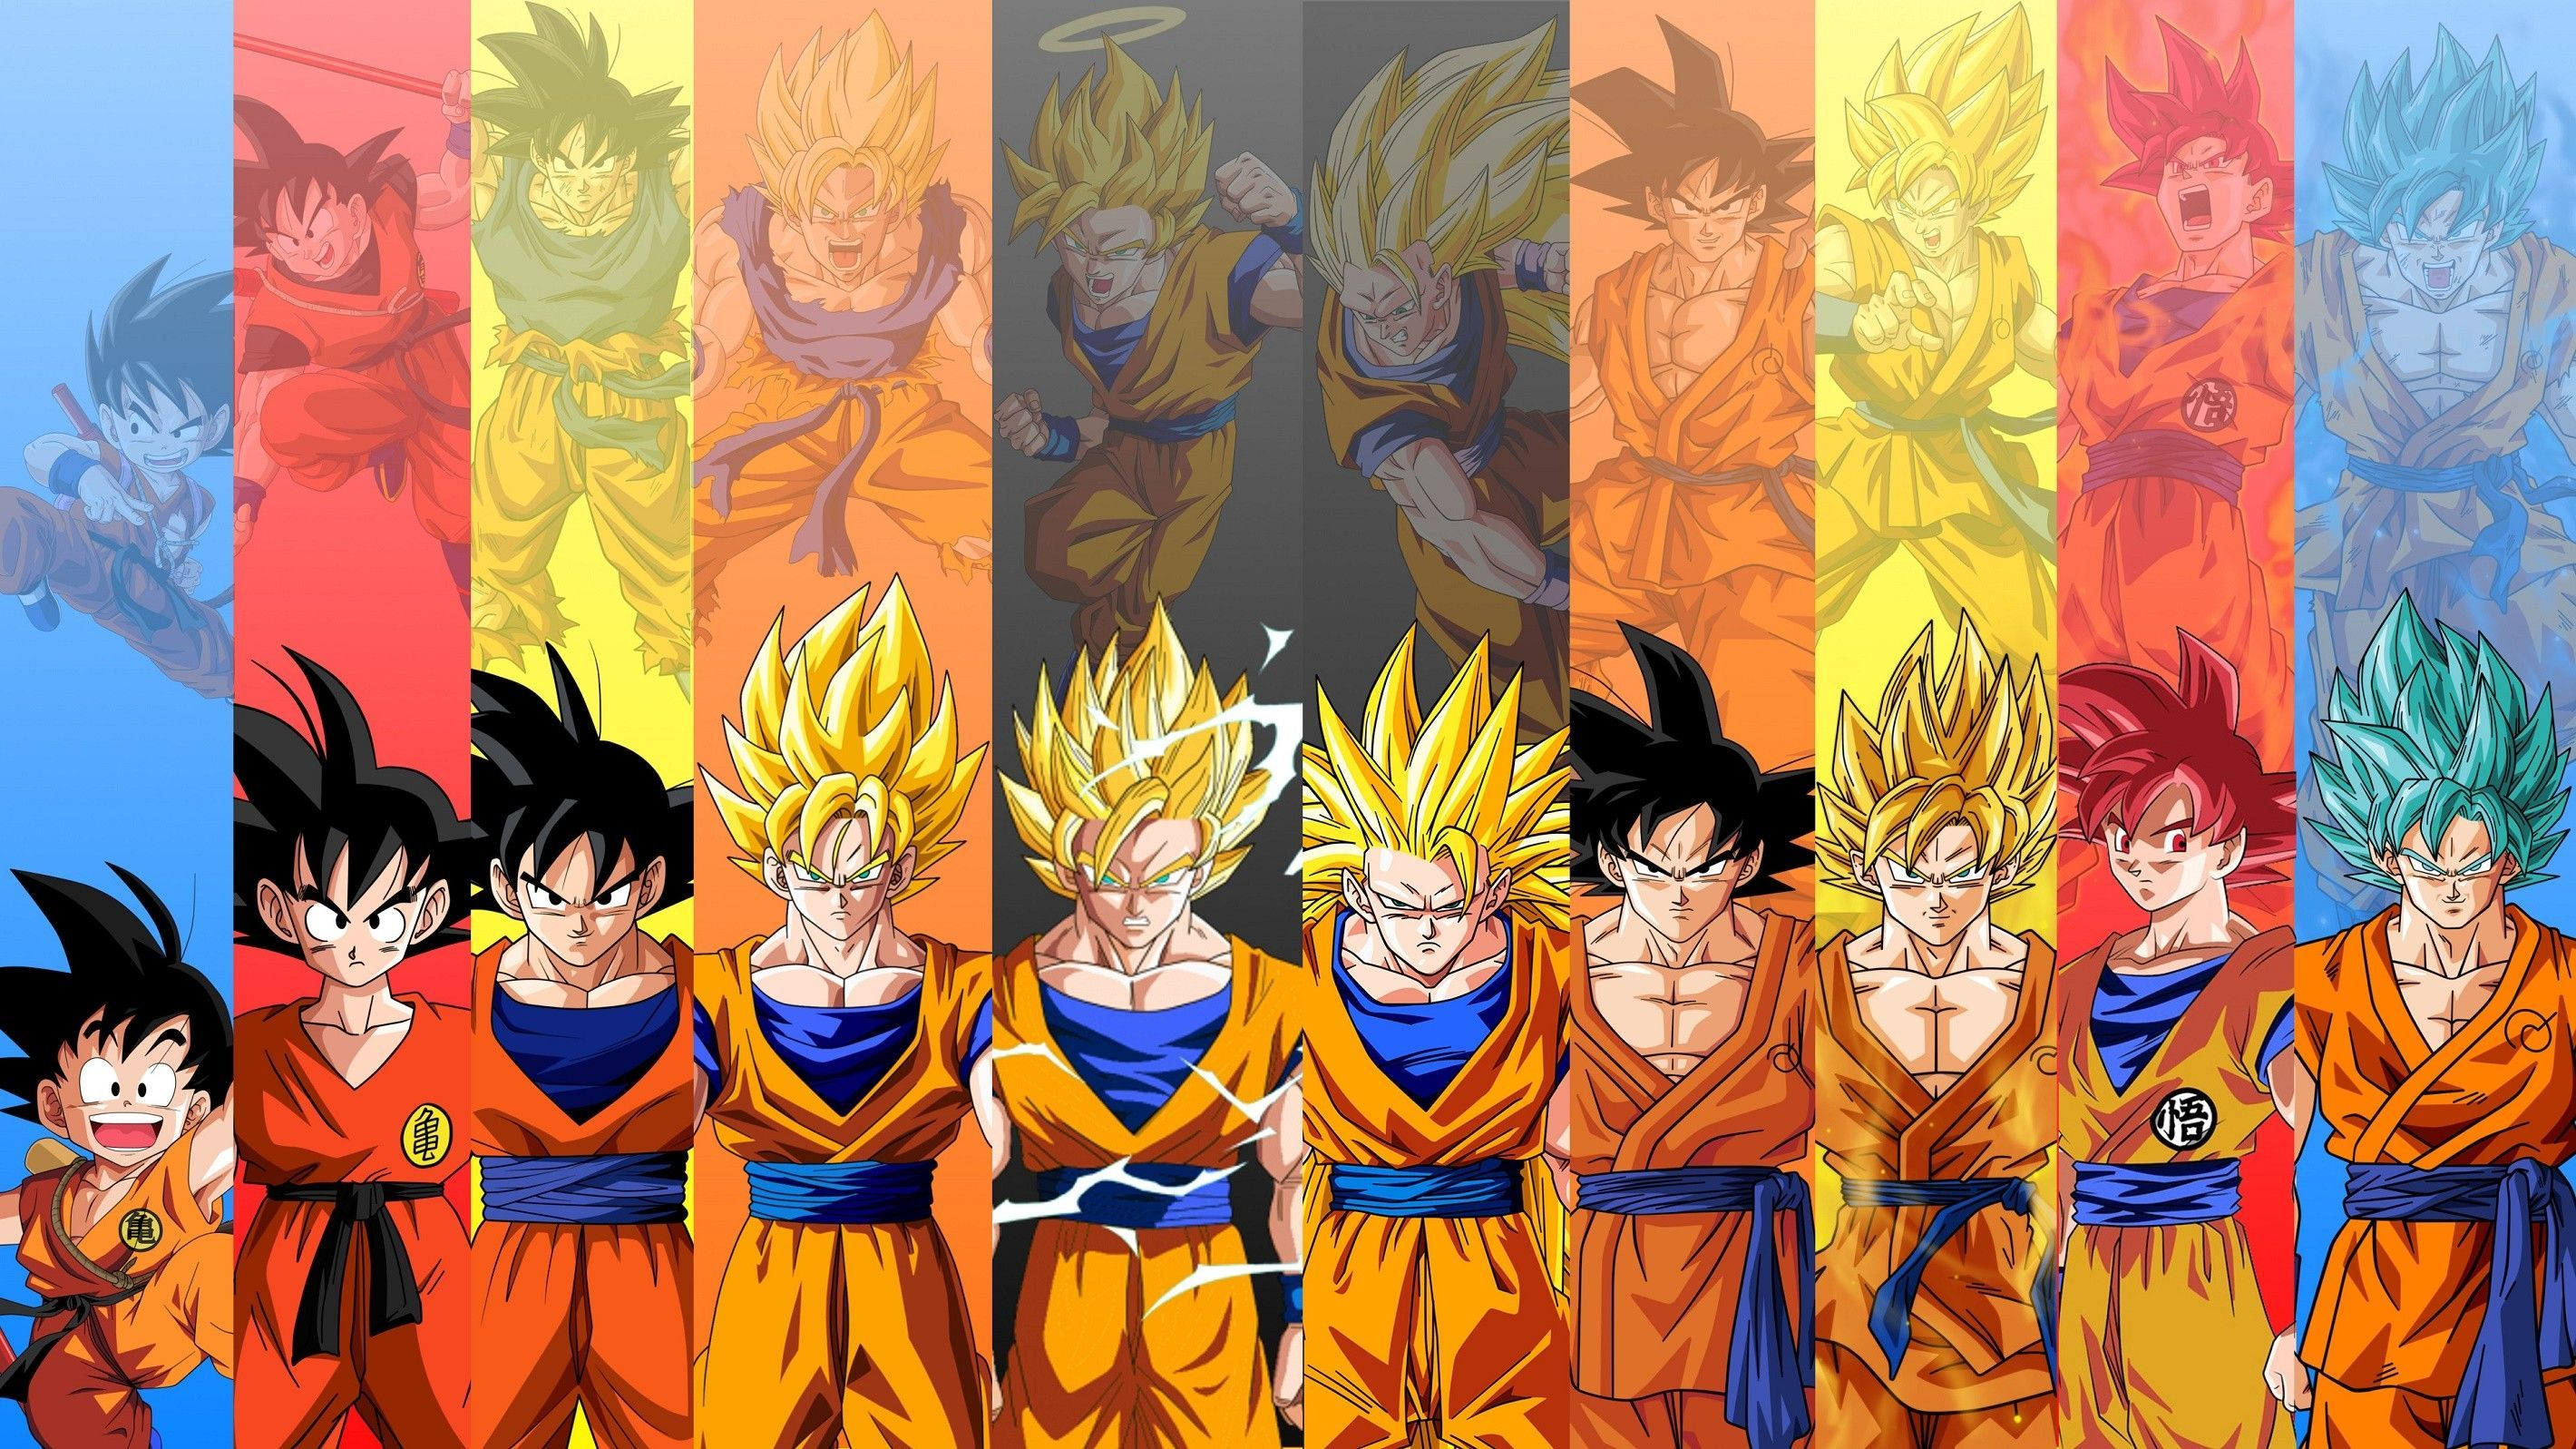 Goku Dragon Ball Super Wallpapers Top Free Goku Dragon Ball Super Backgrounds Wallpaperaccess